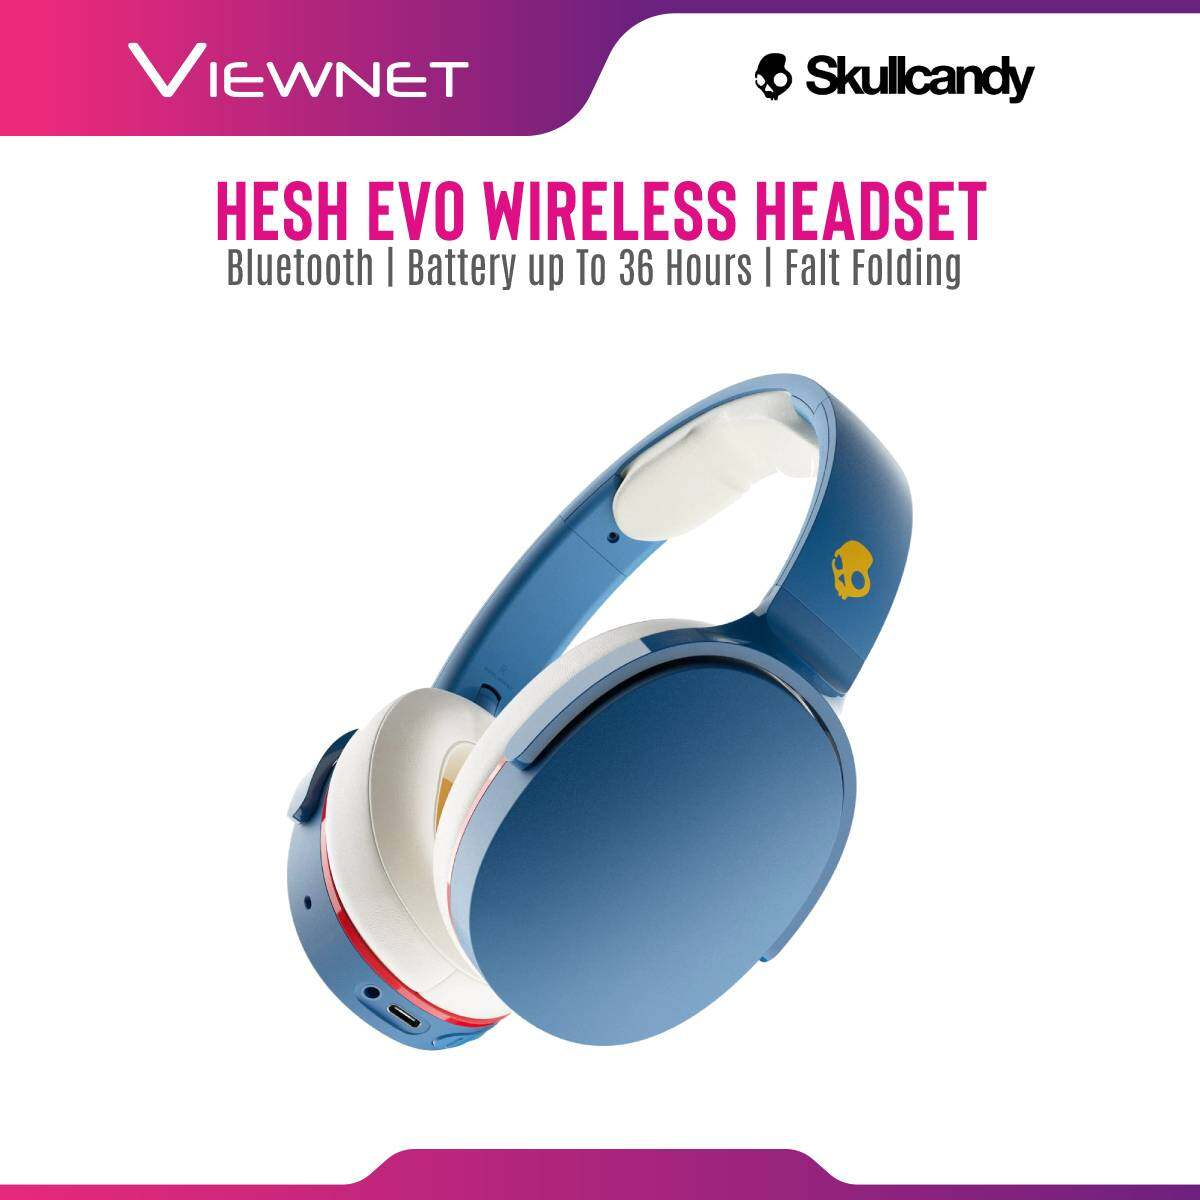 Skullcandy Hesh Evo Wireless Bluetooth  Headphones with Rapid Charge, Up to 36 Hours of Battery